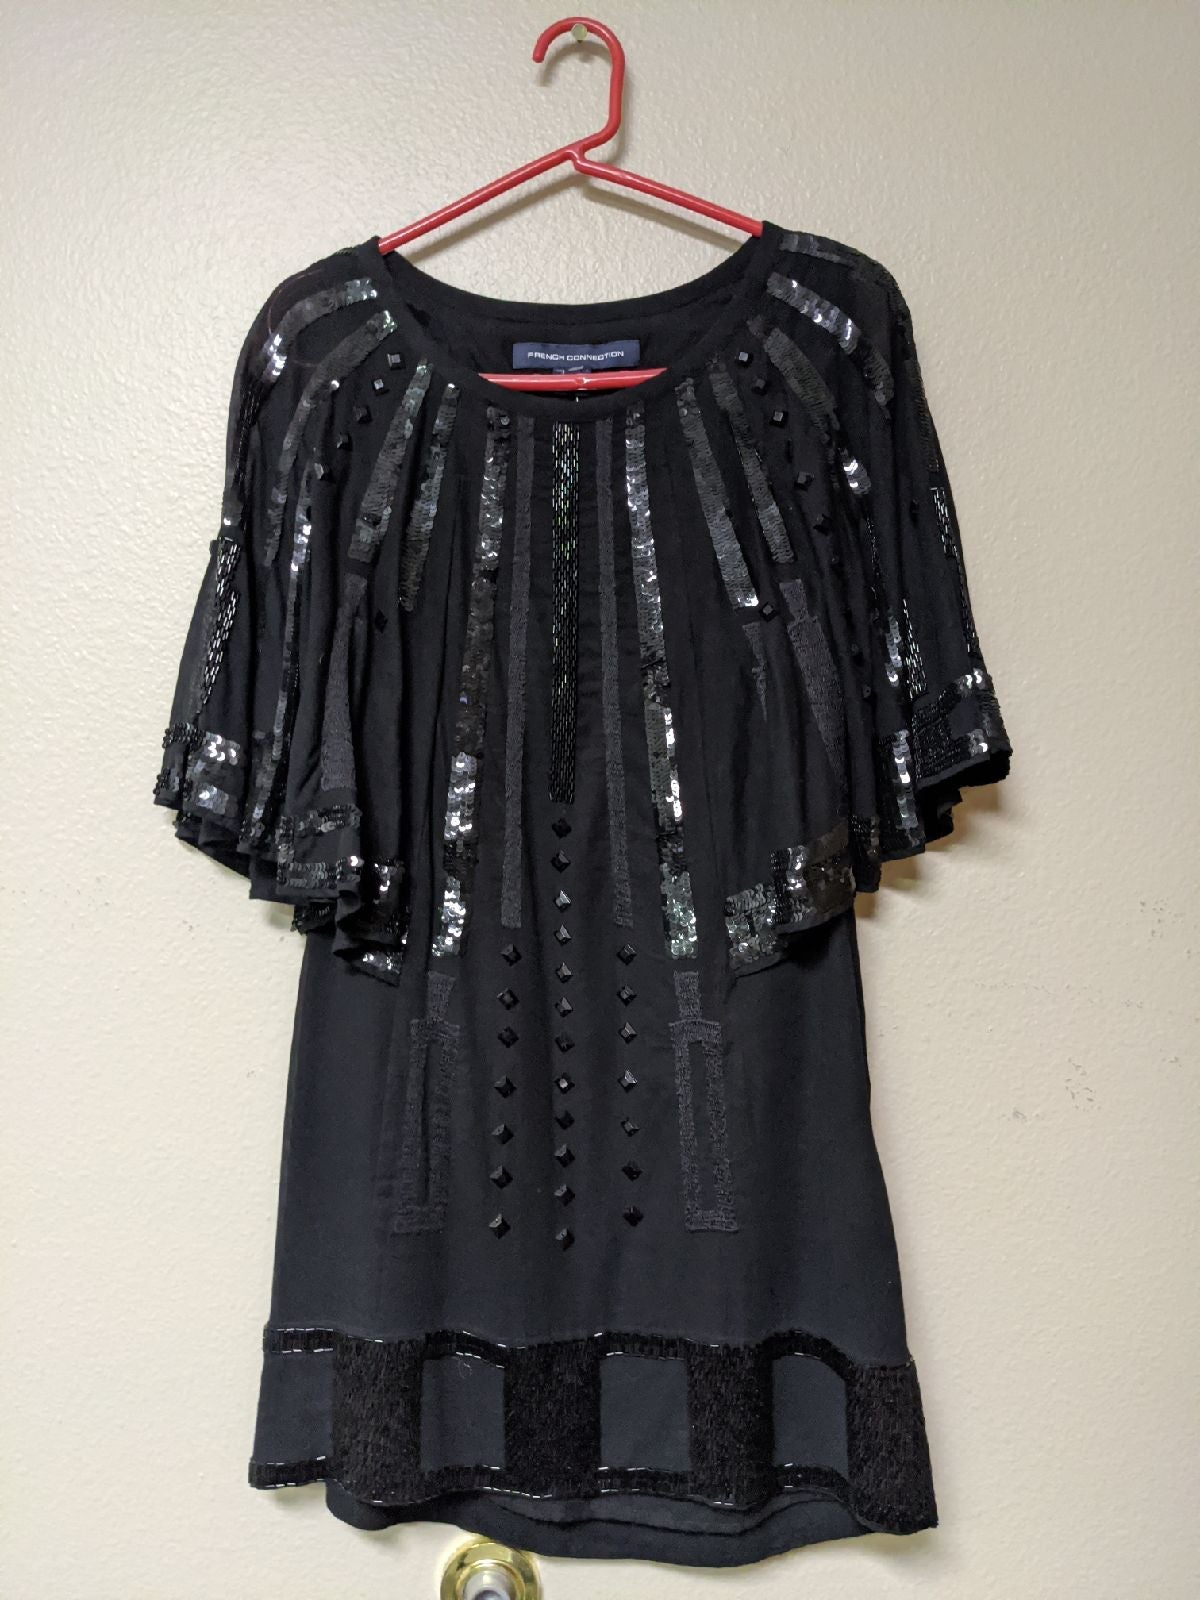 FRENCH CONNECTION Black Sequin Dress NWT